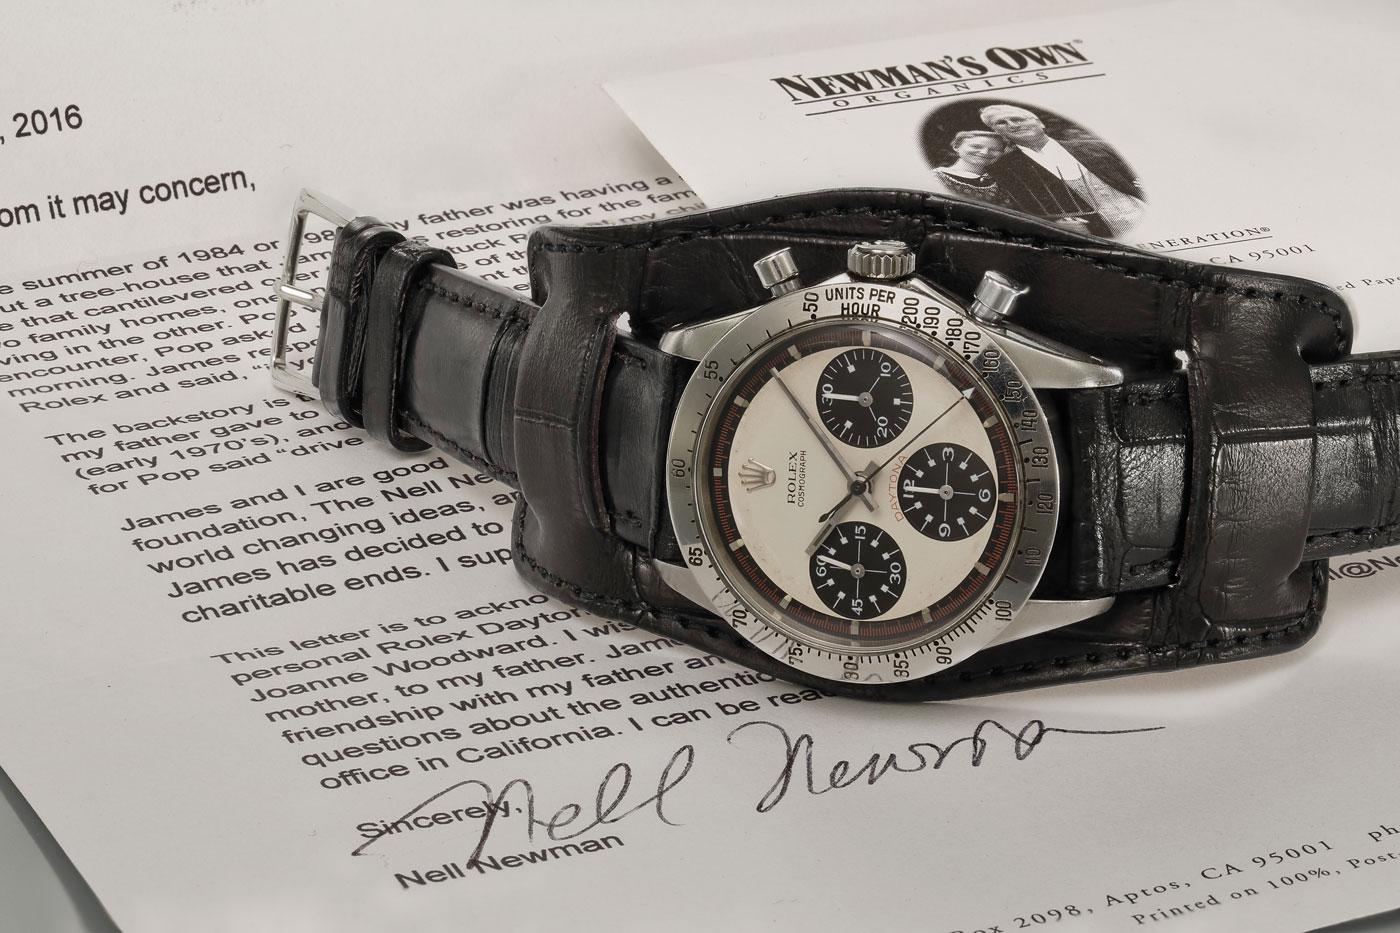 Paul Newman Rolex Watch